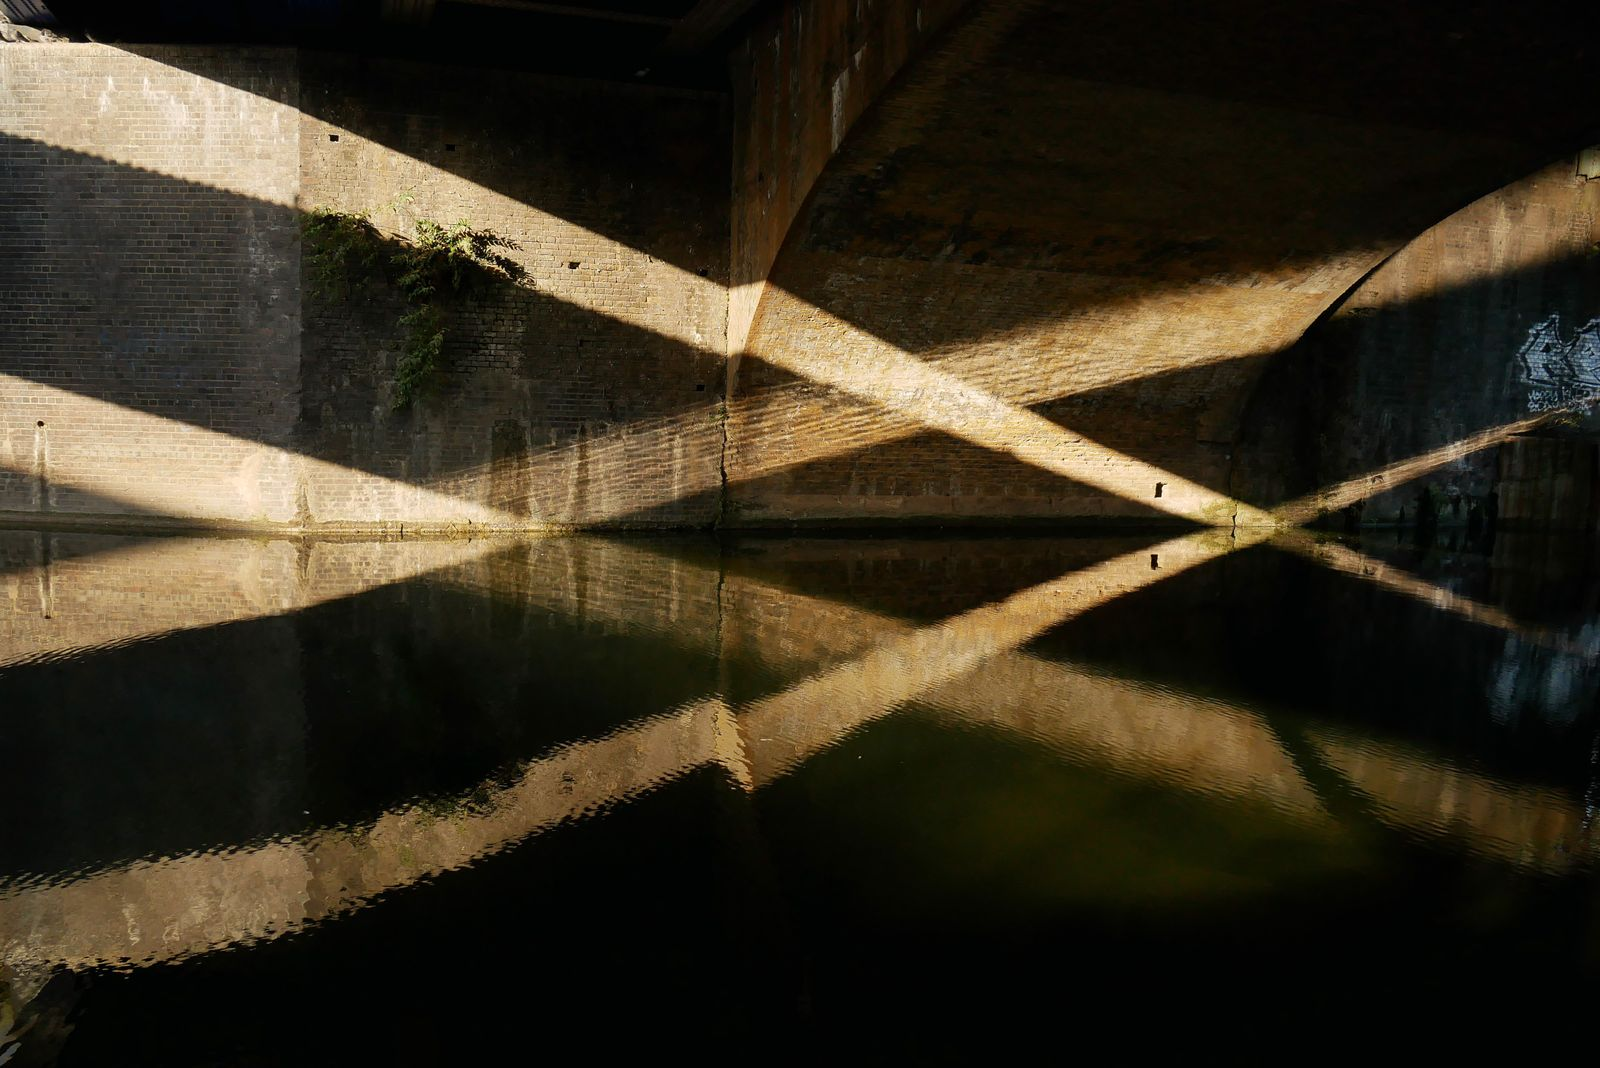 Shafts of sunlight, intersected and reflected